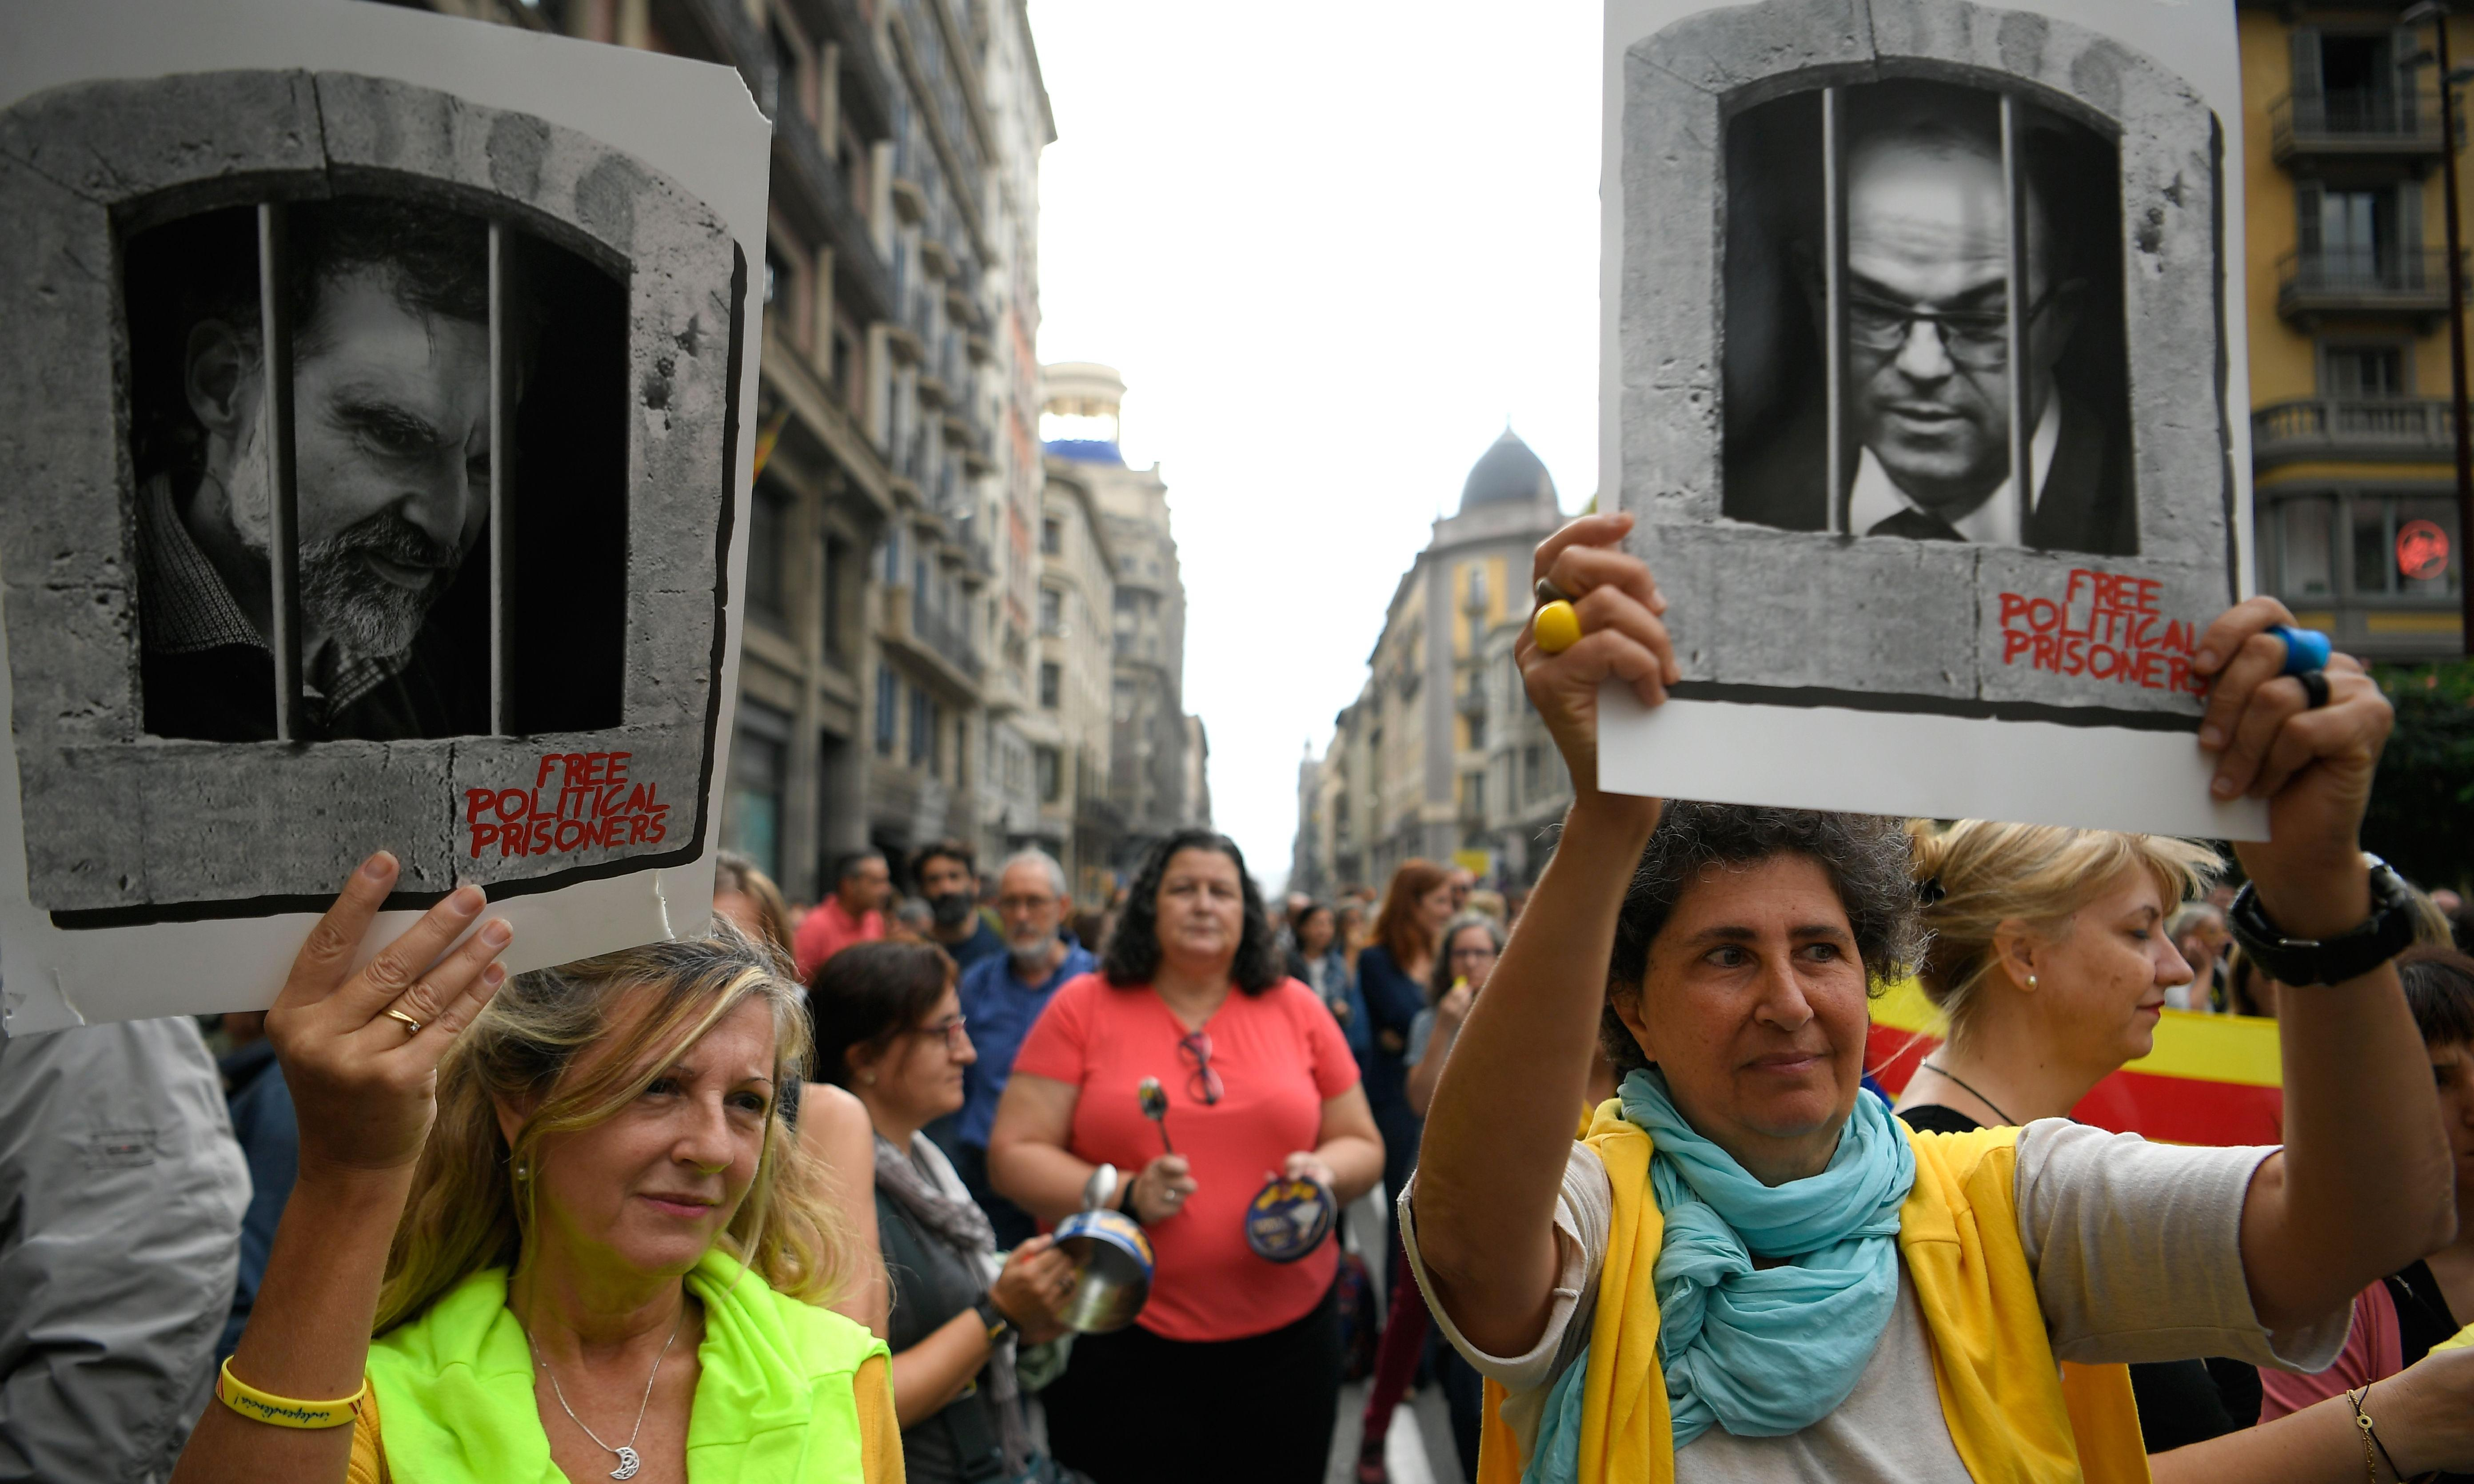 Catalans protest at 'harsh' sentencing of independence leaders